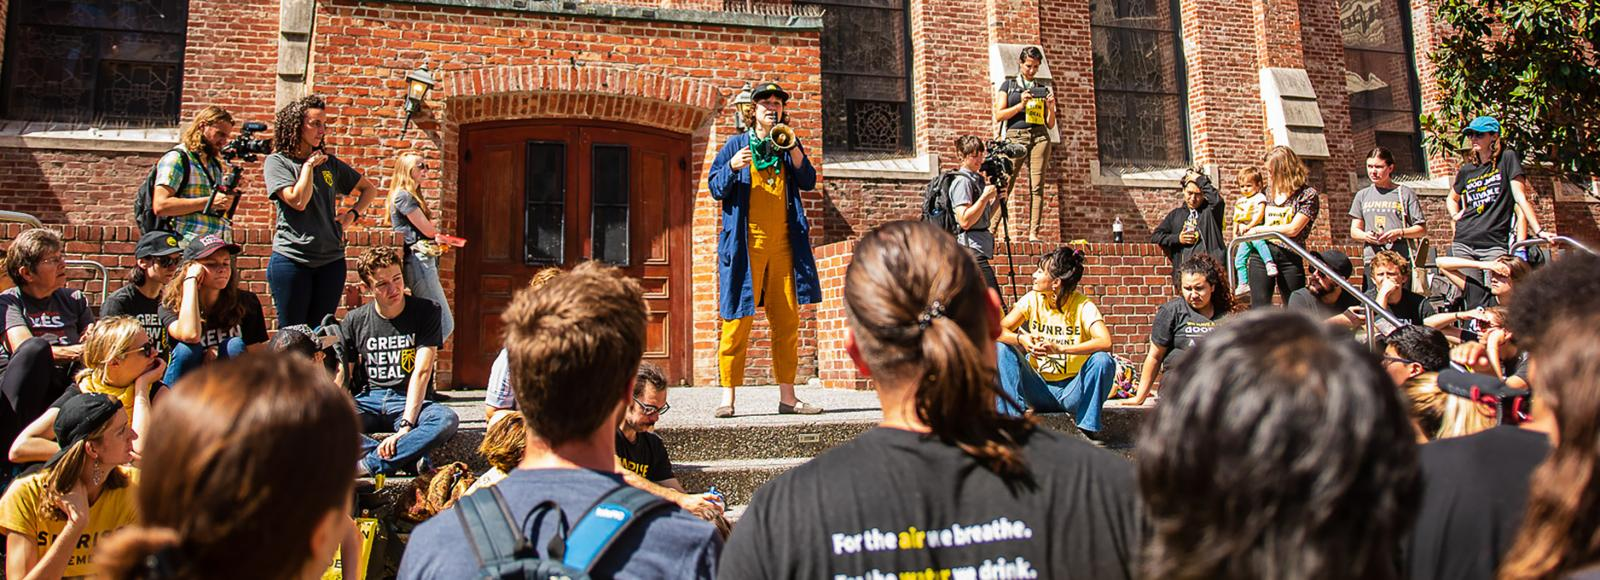 A young person wearing a blue cardigan over a yellow jumpsuit, speaks on a megaphone, to a small crowd of young people gathered in front of a large brick building.